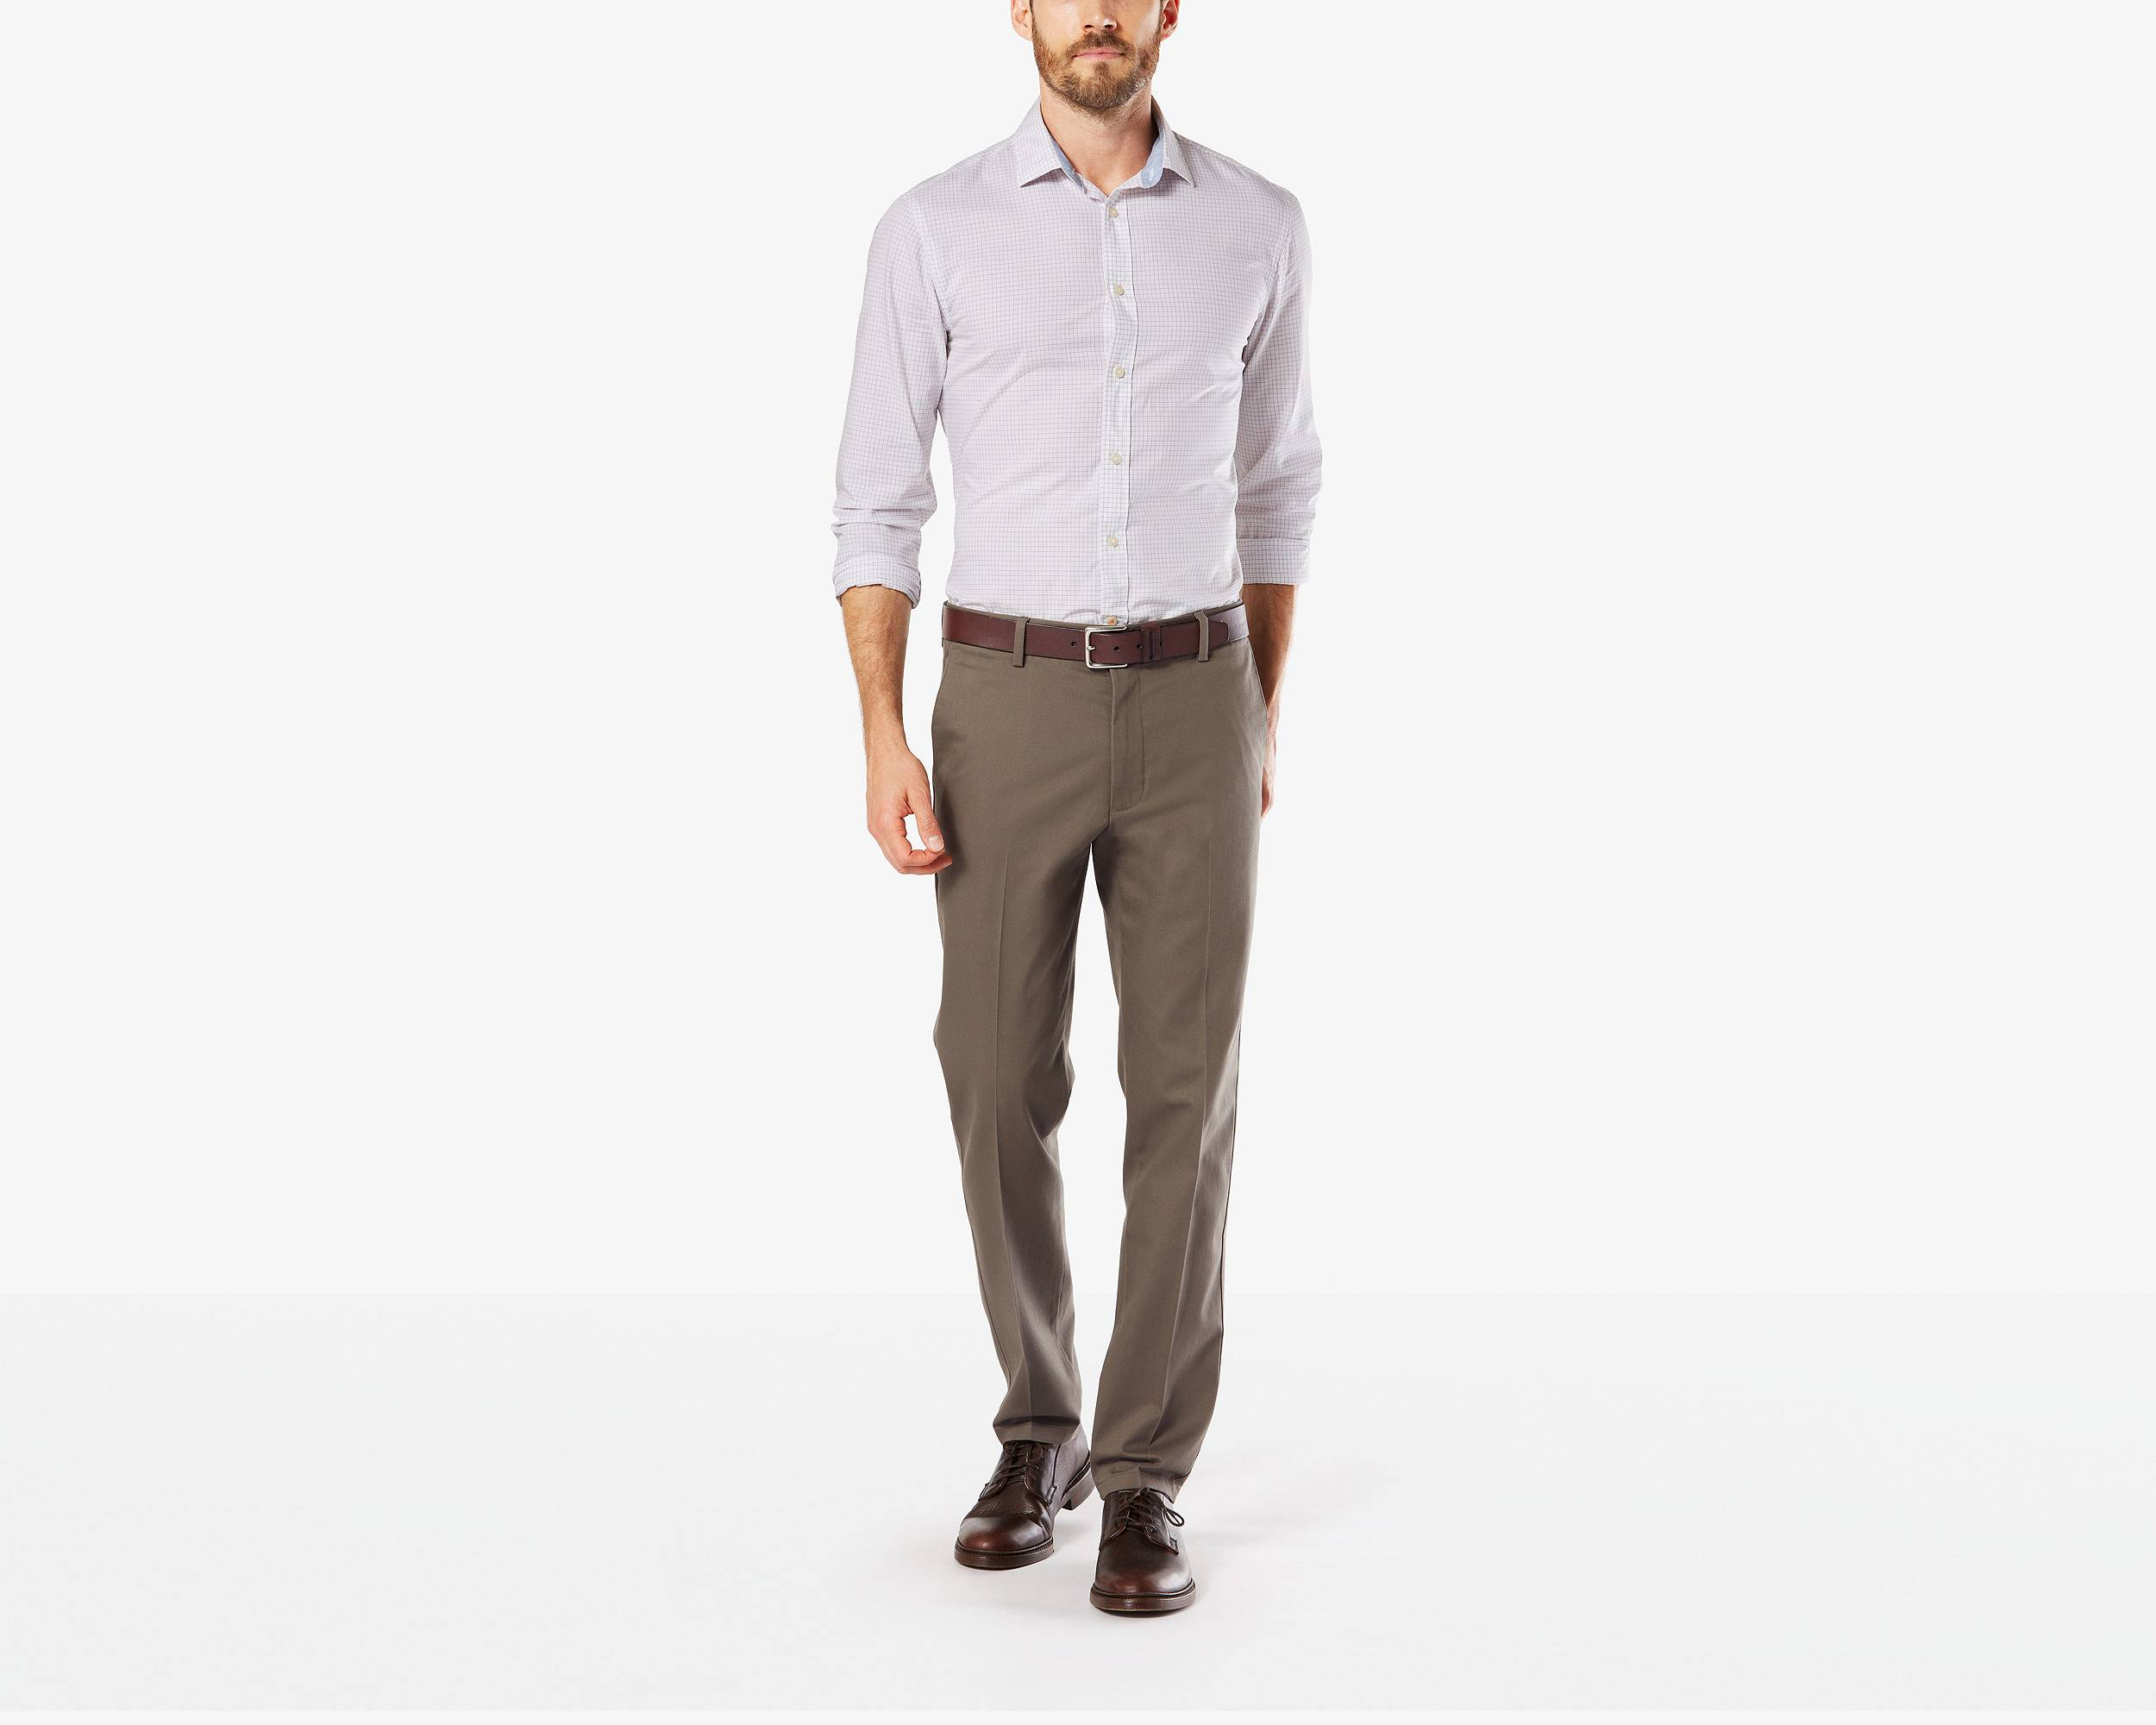 Khaki Stretch Pants - Signature Stretch Khakis | Dockers®